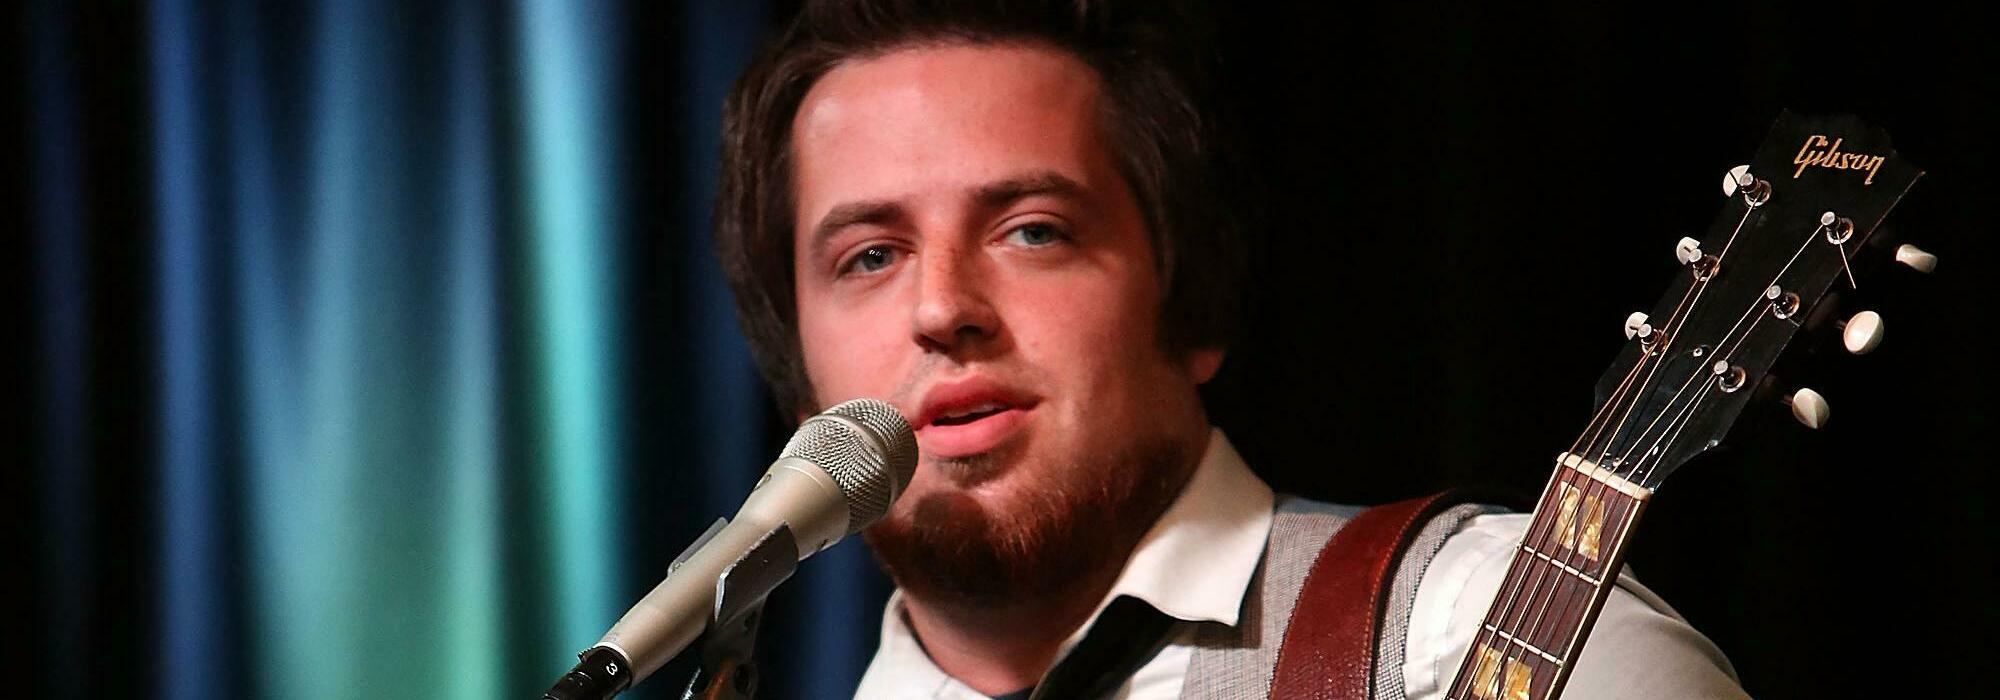 A Lee DeWyze live event